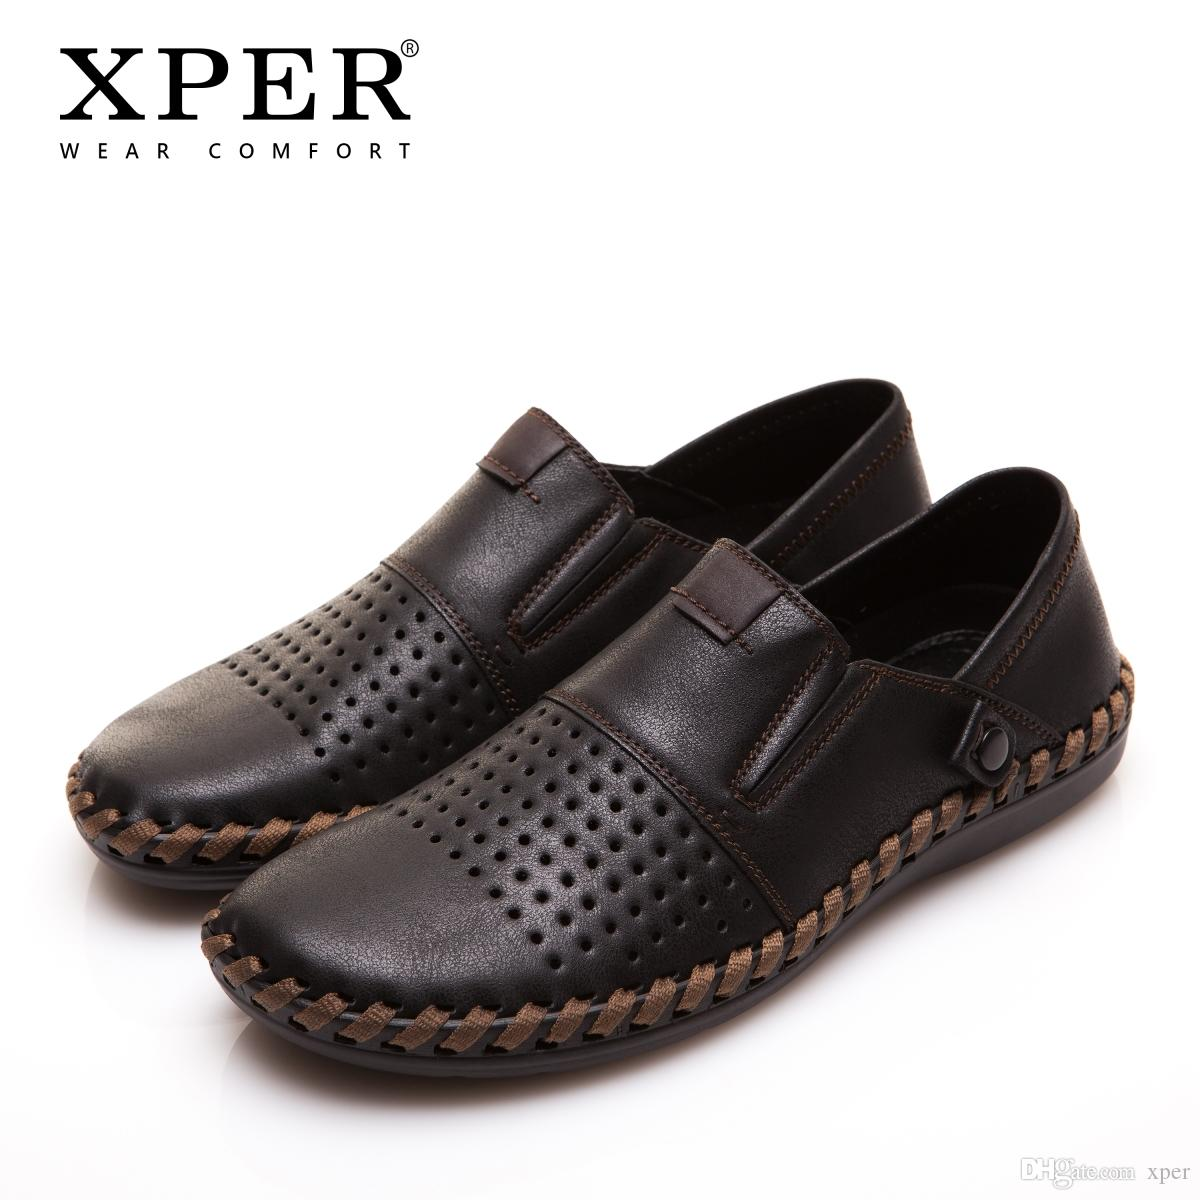 Fashion Luxury Men Casual Shoes Slip-on Mocassins Men Loafers Breathable Size YMD86688BL/BN